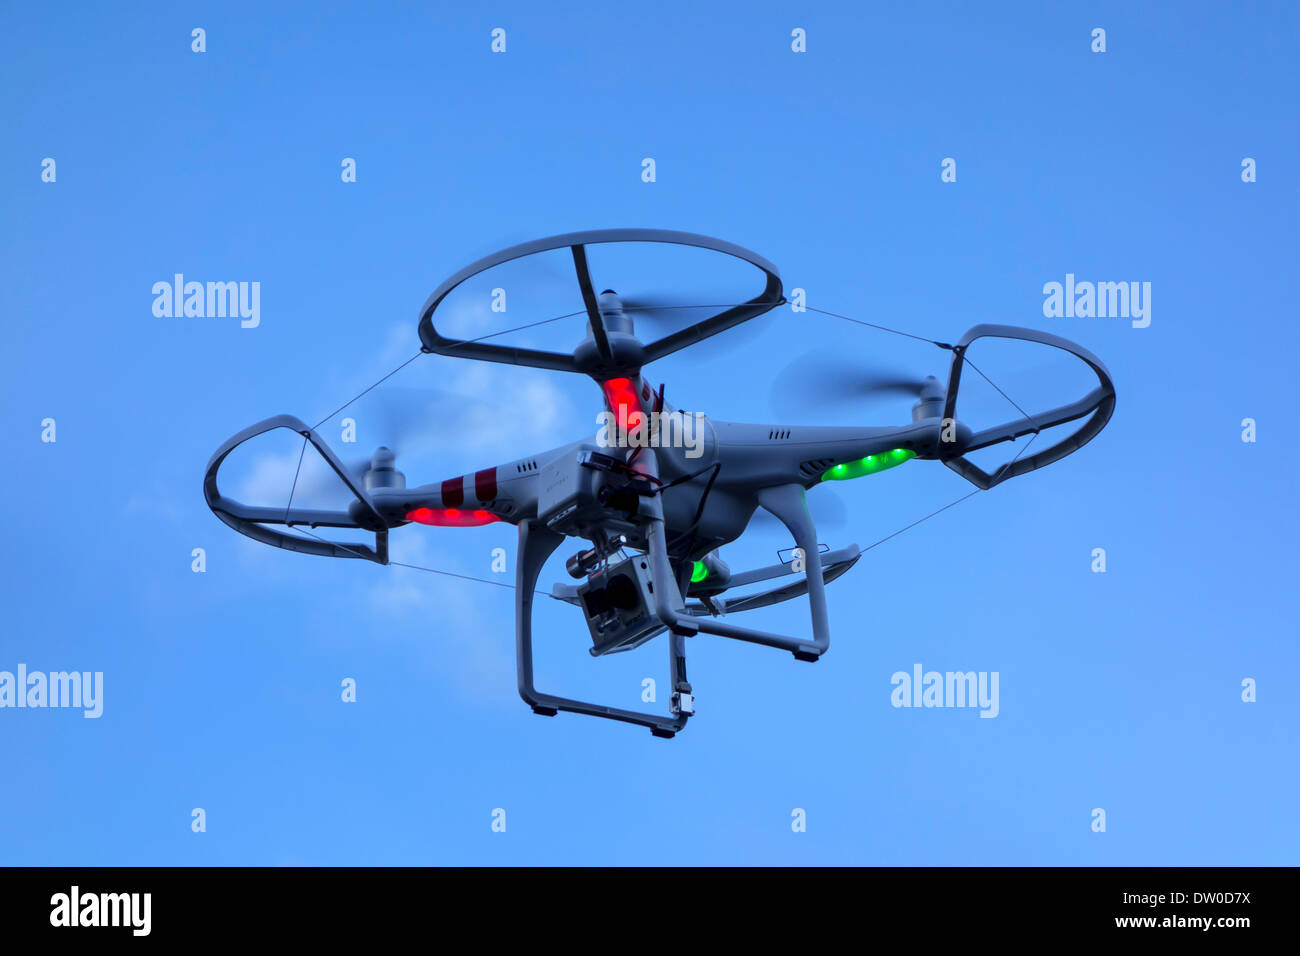 Miniature drone / unmanned aerial vehicle / UAV equipped with camera in flight against blue sky with clouds - Stock Image